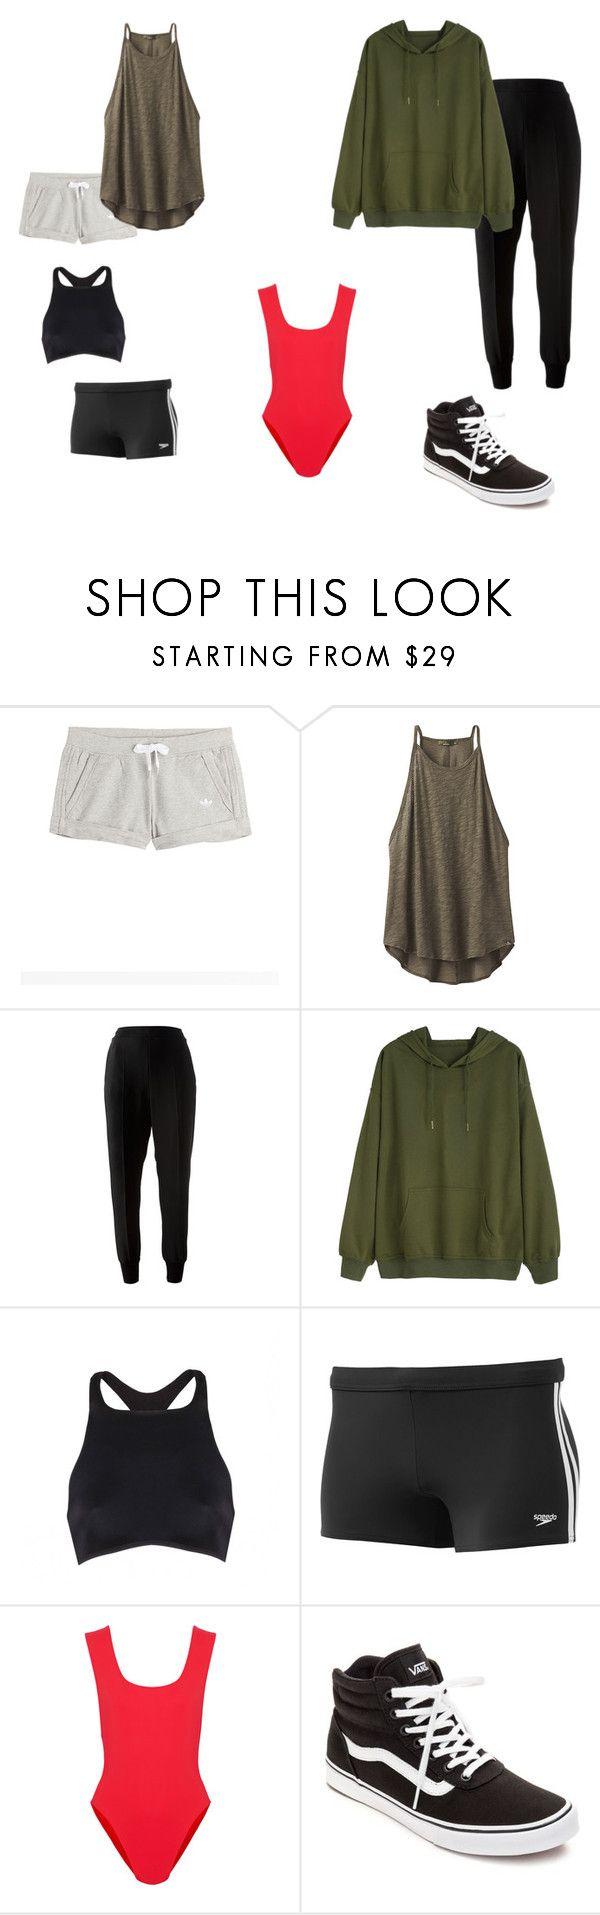 """""""Survivor: The Type Of Clothes To Take With You(WOMAN)"""" by sr-for-the-world on Polyvore featuring adidas Originals, prAna, STELLA McCARTNEY, UrchinDeep, Speedo, Araks, Vans, Greece, survivor and realityTV"""